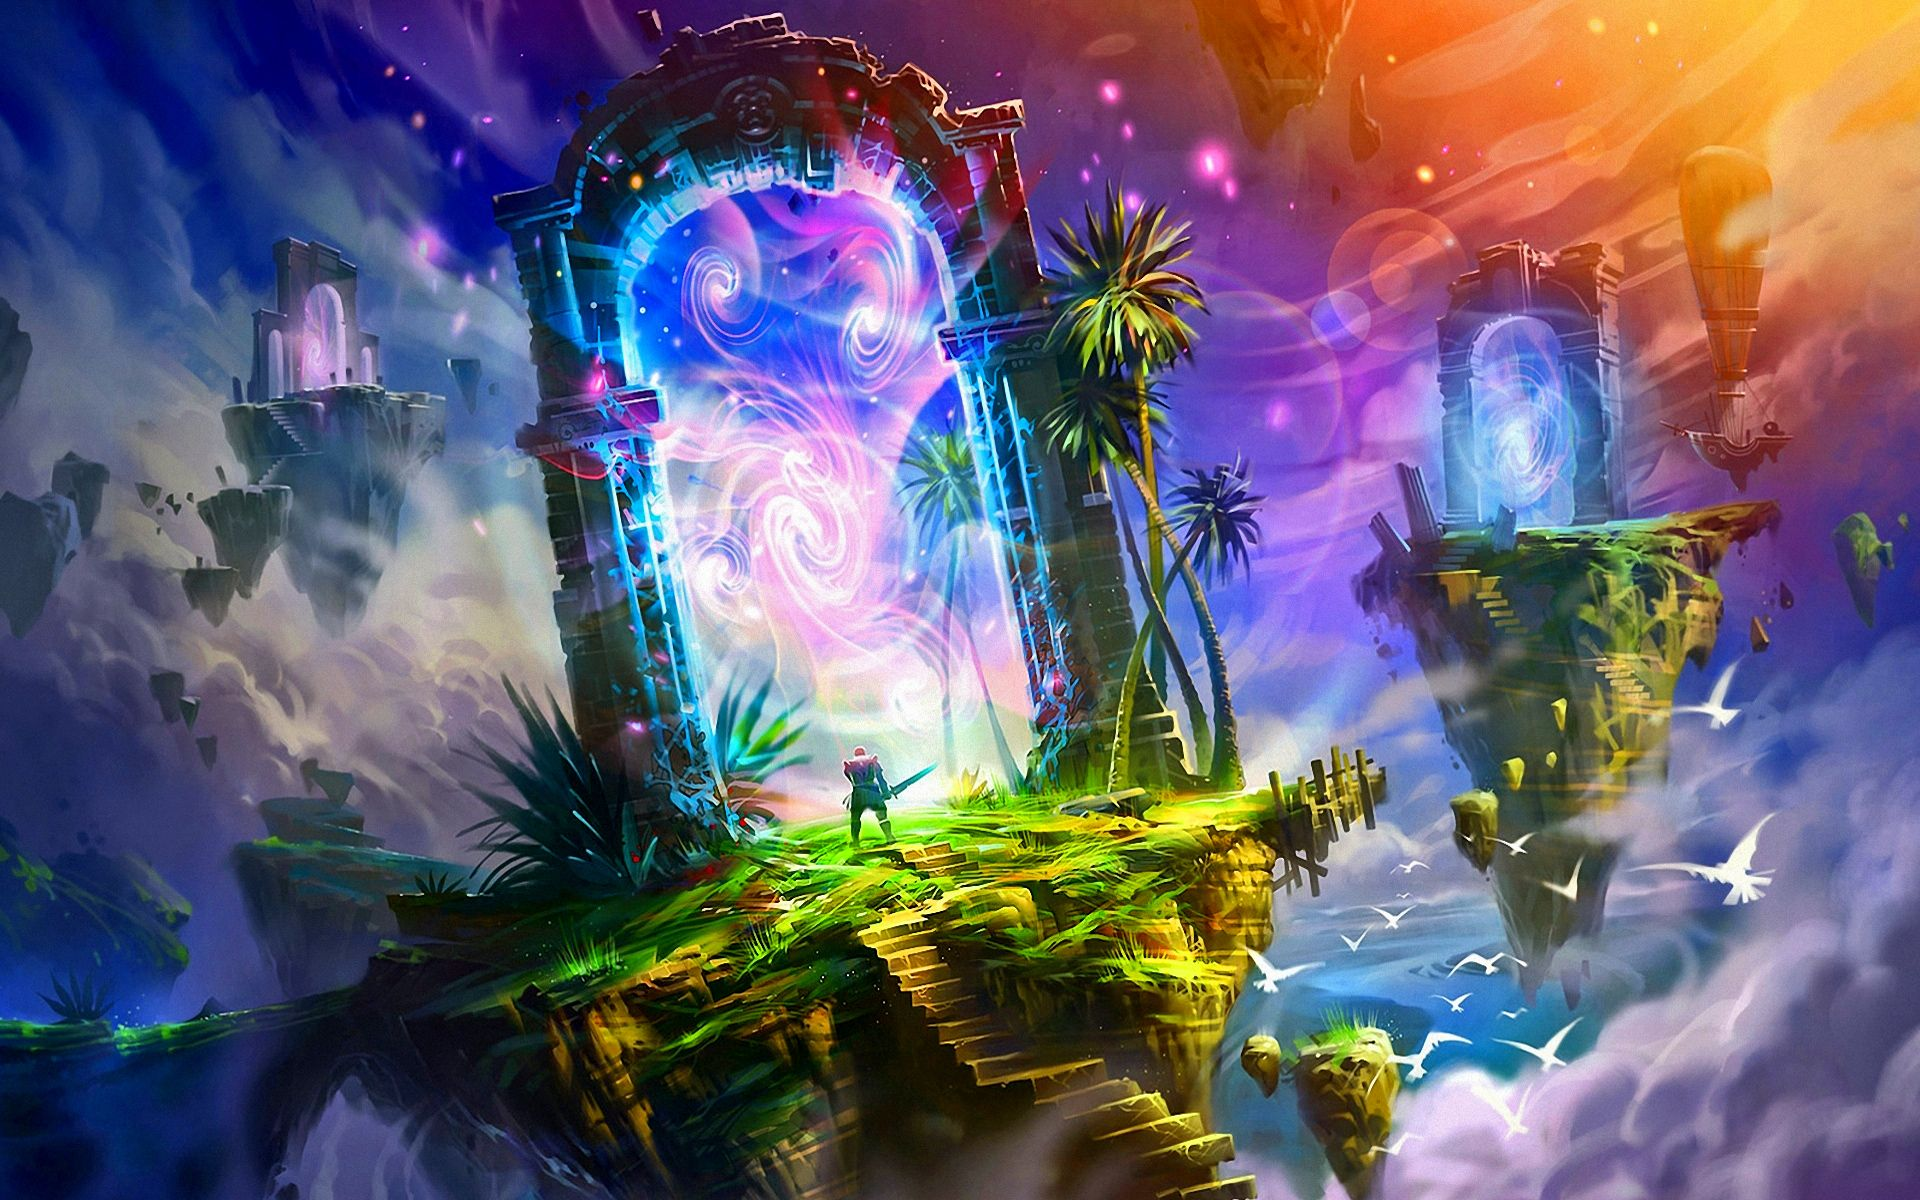 Fantasy land wallpaper wallpapersafari portal art fantasy landscape fantasy art - Magic land wallpaper ...